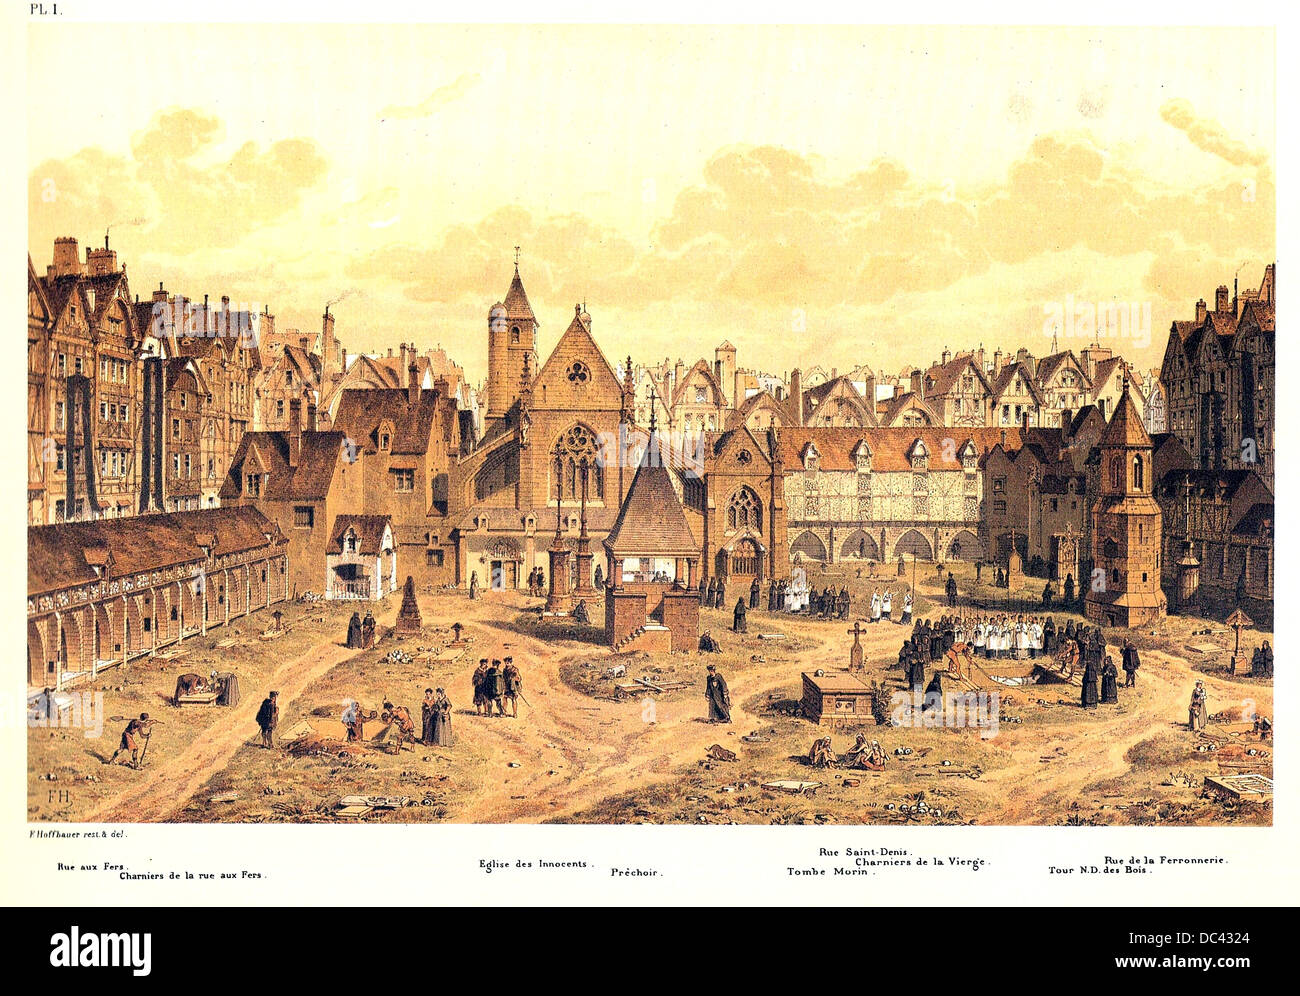 Engraving depicting the Saints Innocents cemetery in Paris, around the year 1550 - Stock Image